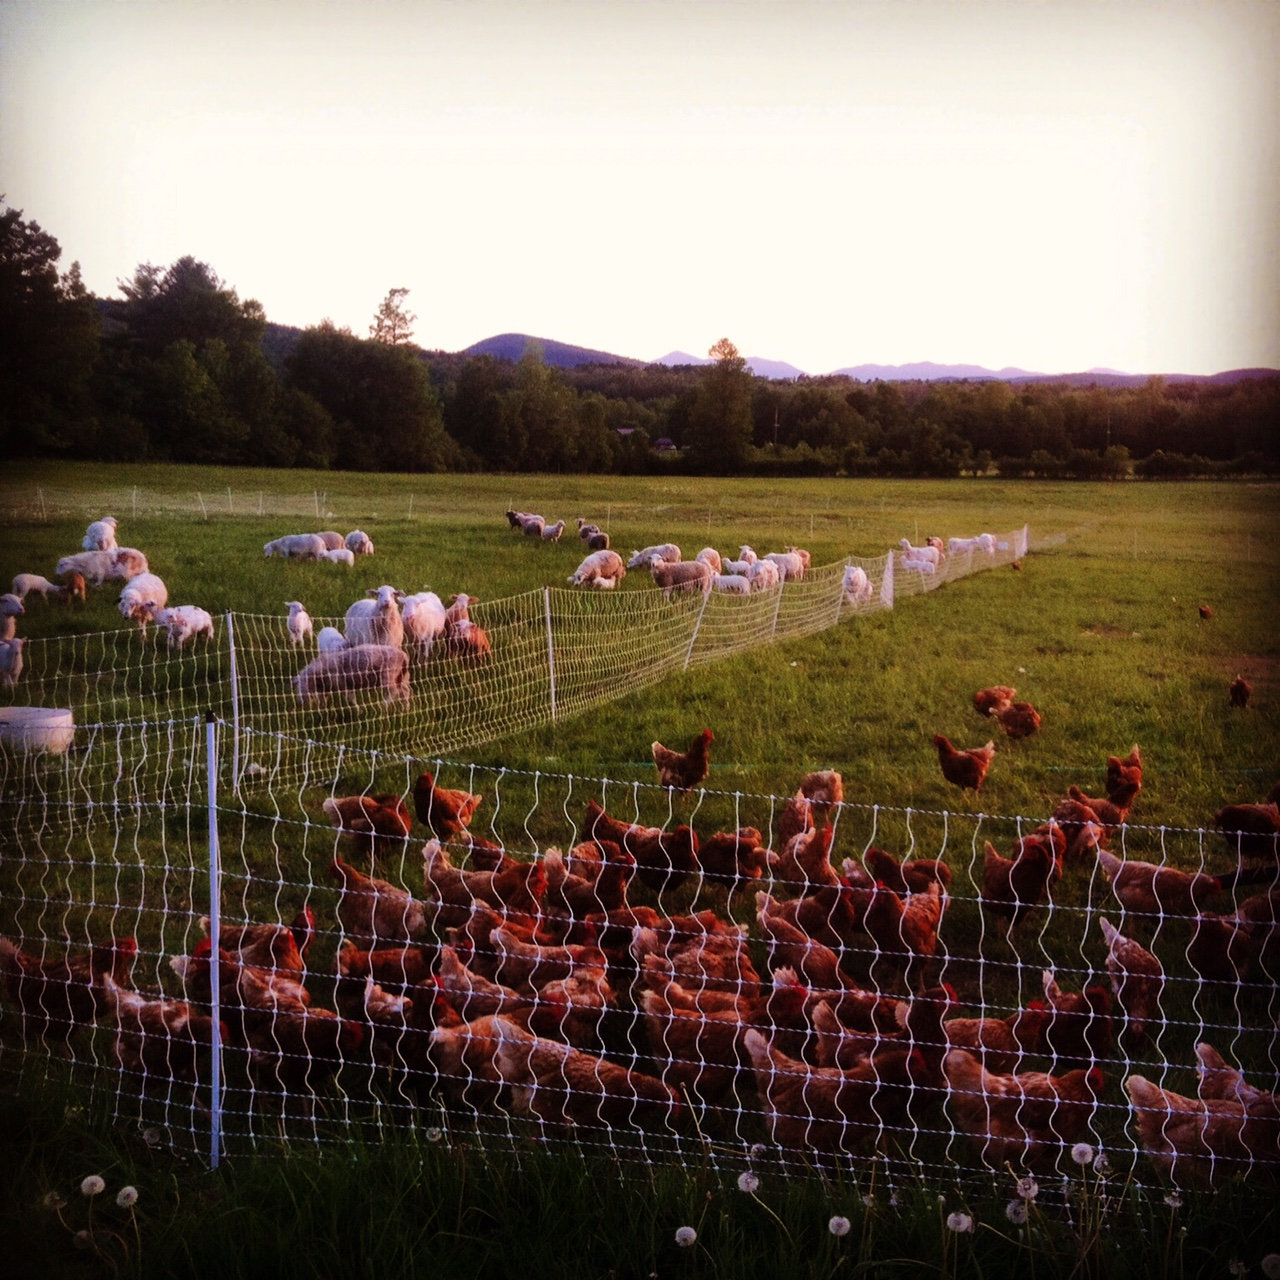 sheep and chickens on pasture.JPG